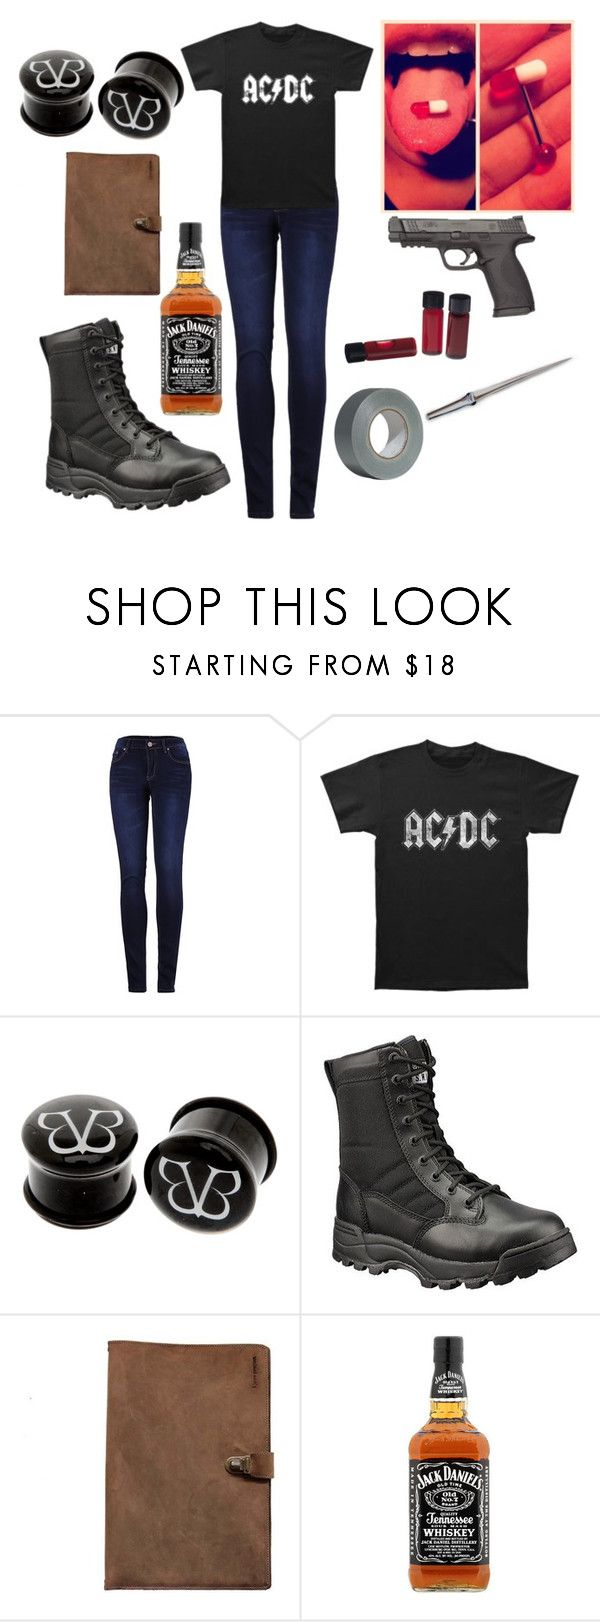 """""""Siren Hunting Trip"""" by syeatts on Polyvore featuring 2LUV, AC/DC, Hot Topic, Original S.W.A.T., Smith & Wesson and Kjøre Project"""